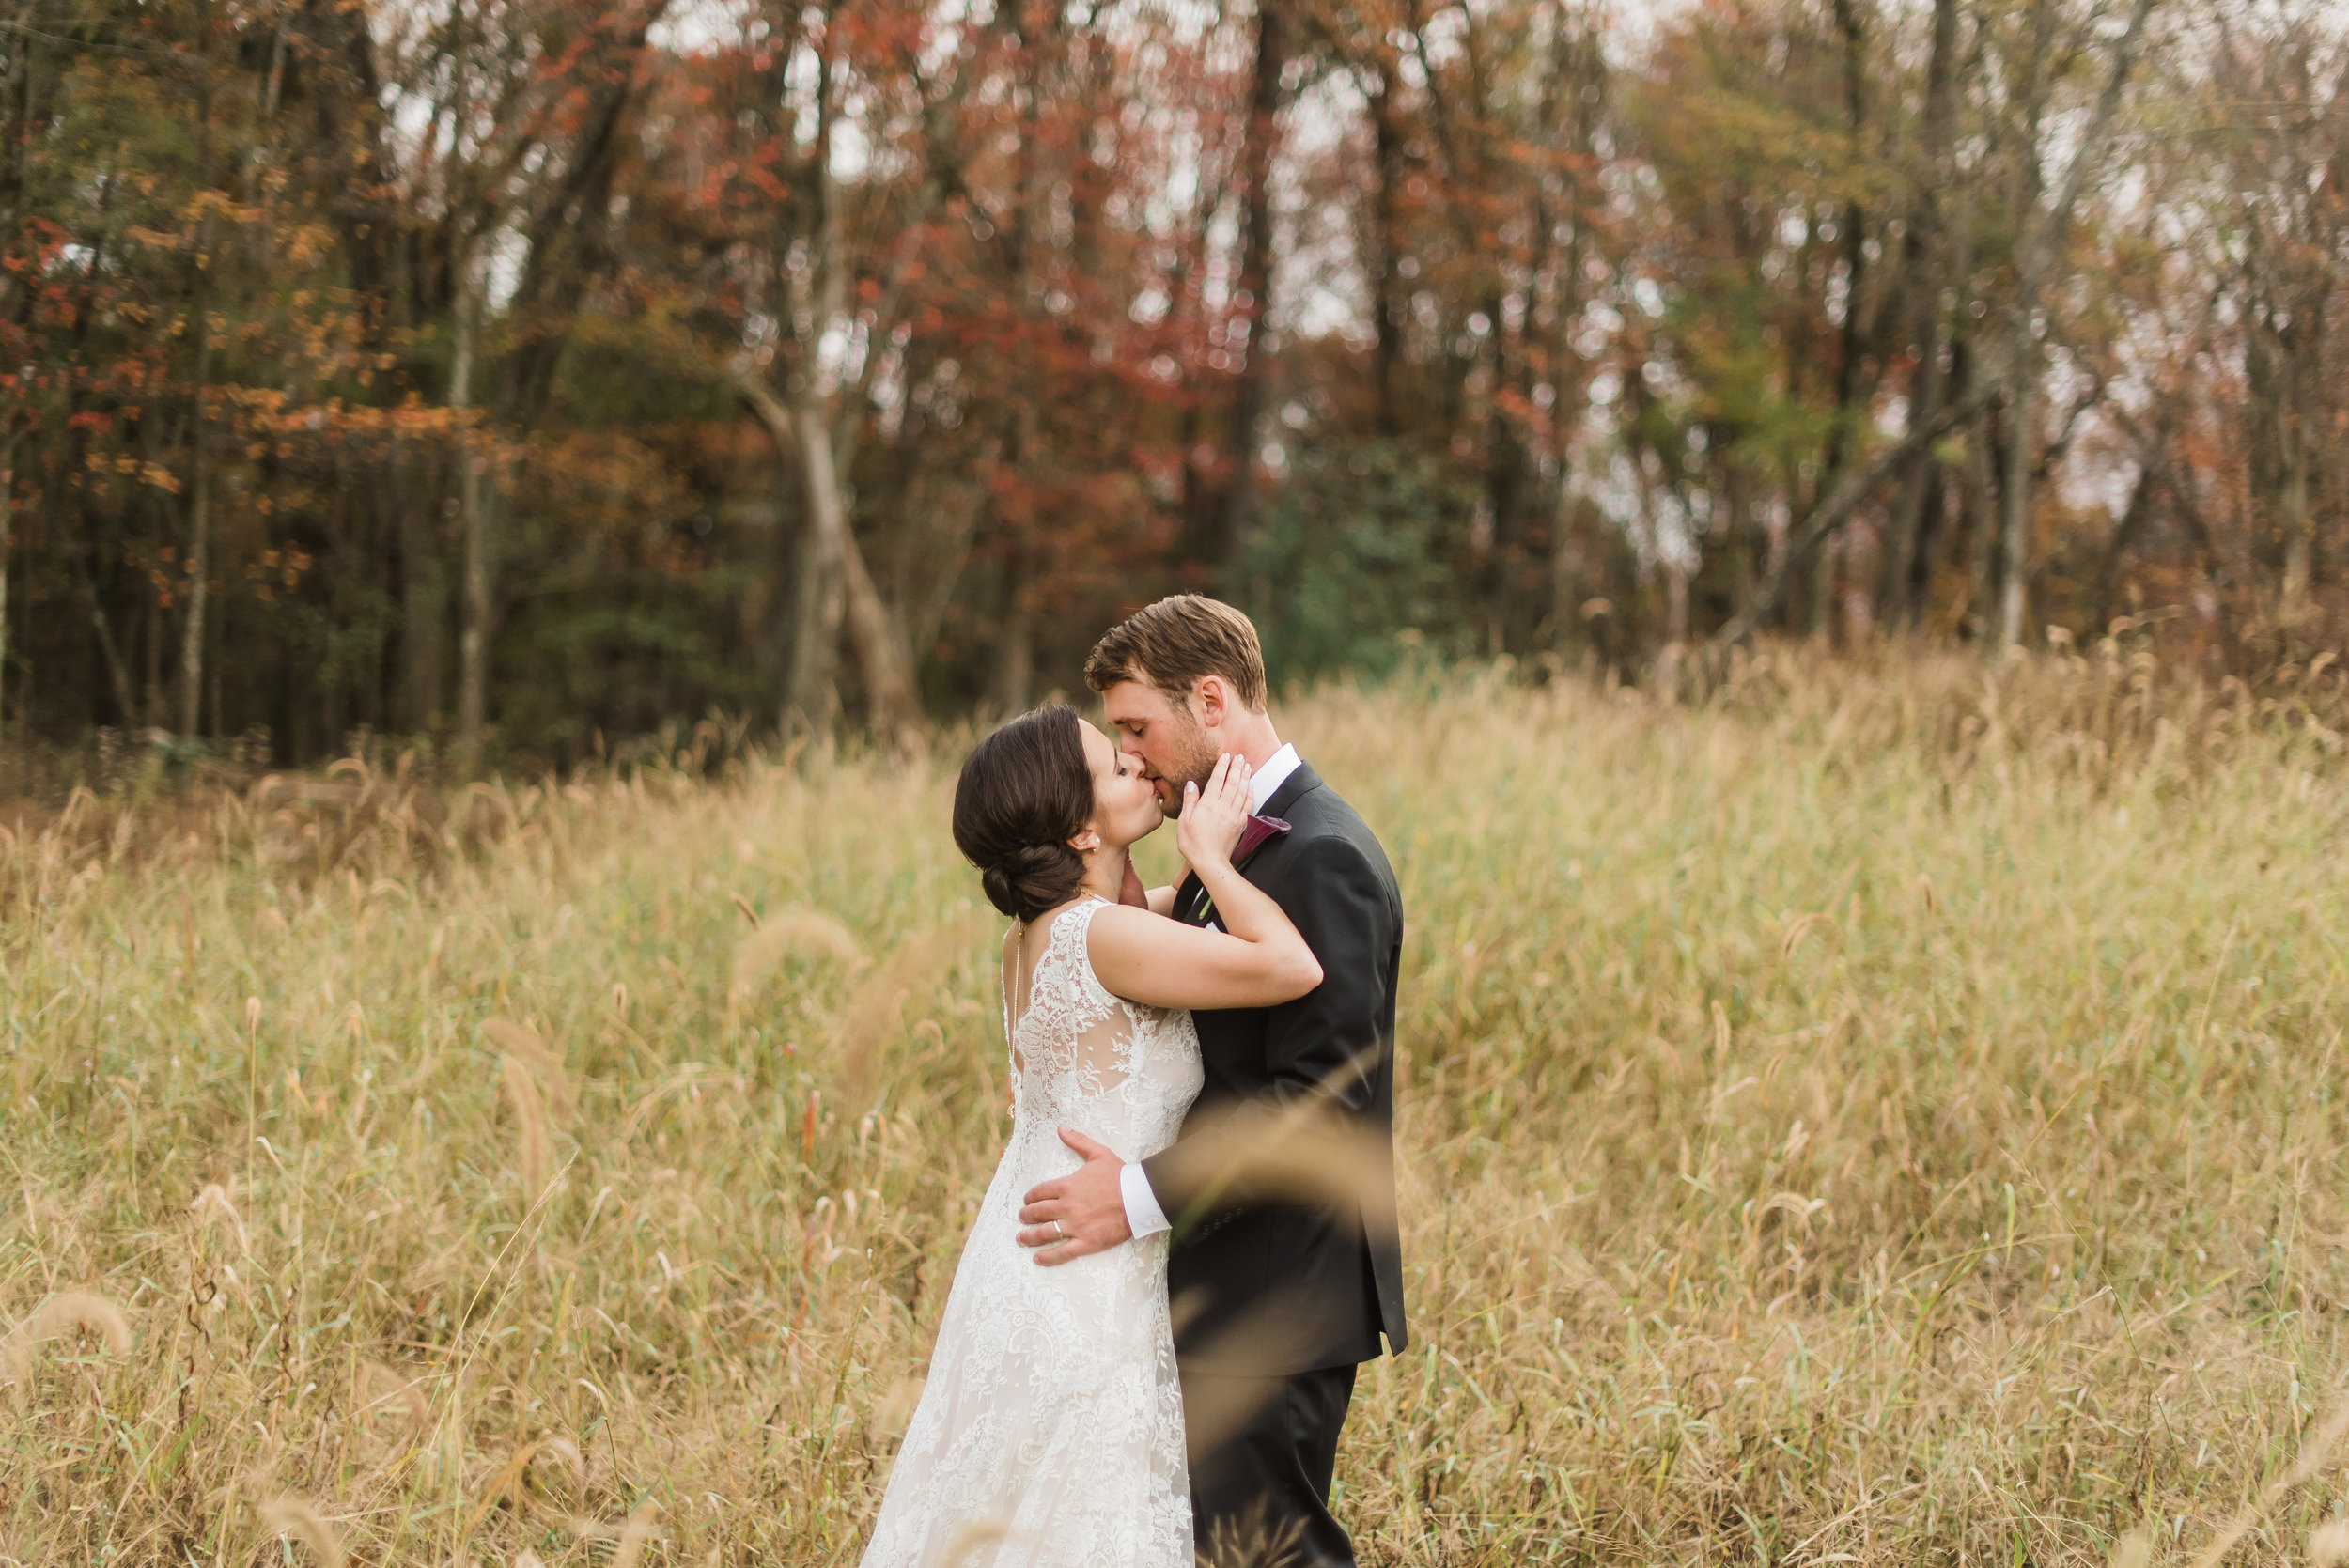 pittsburgh-wedding-photographer-classic-fall-modern0042.jpg